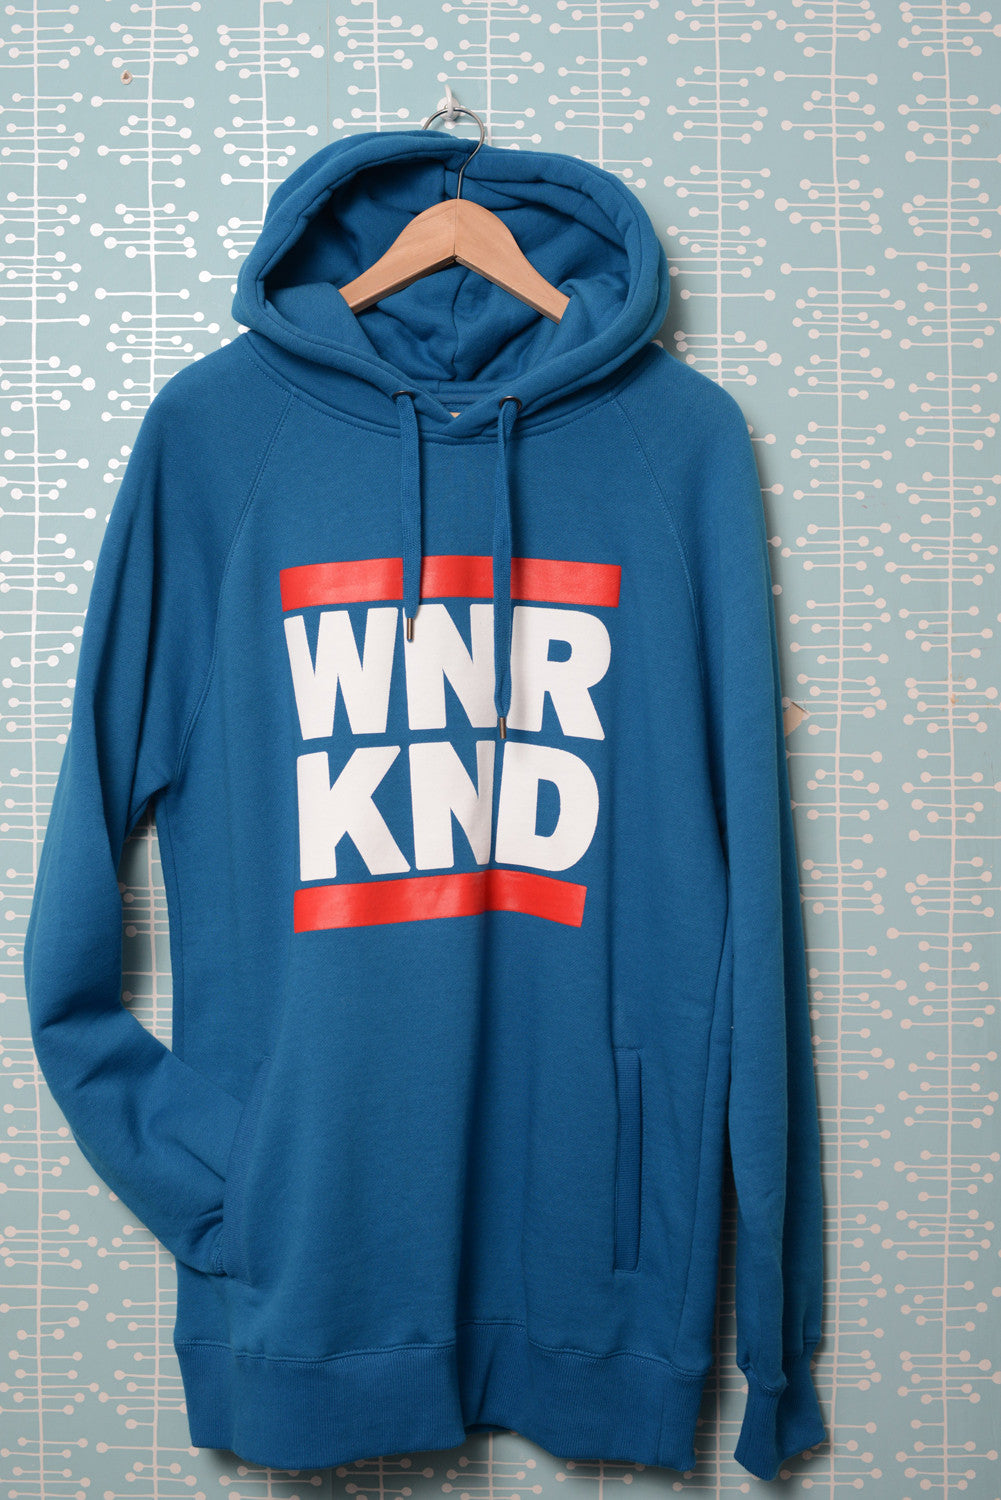 WNRKND Hoody With Side Pockets island blue